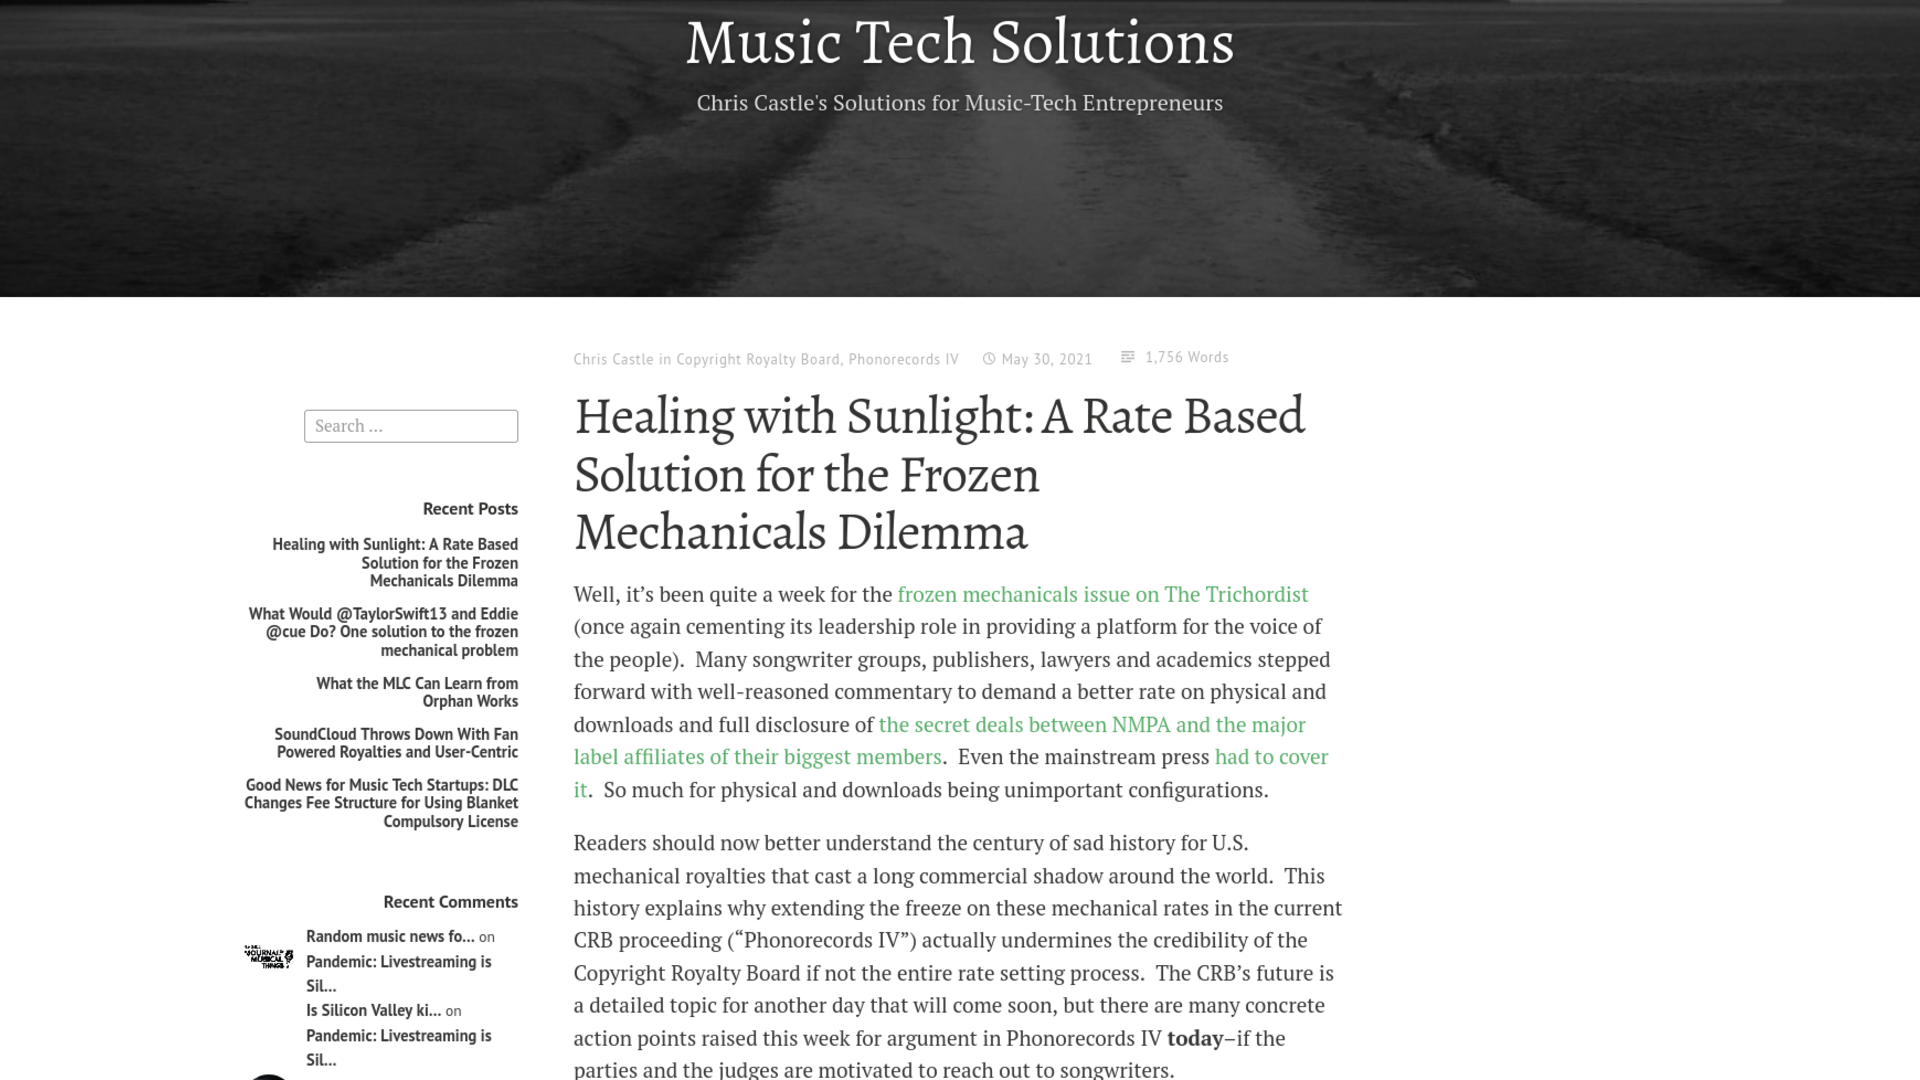 Fairness Rocks News Healing with Sunlight: A Rate Based Solution for the Frozen Mechanicals Dilemma